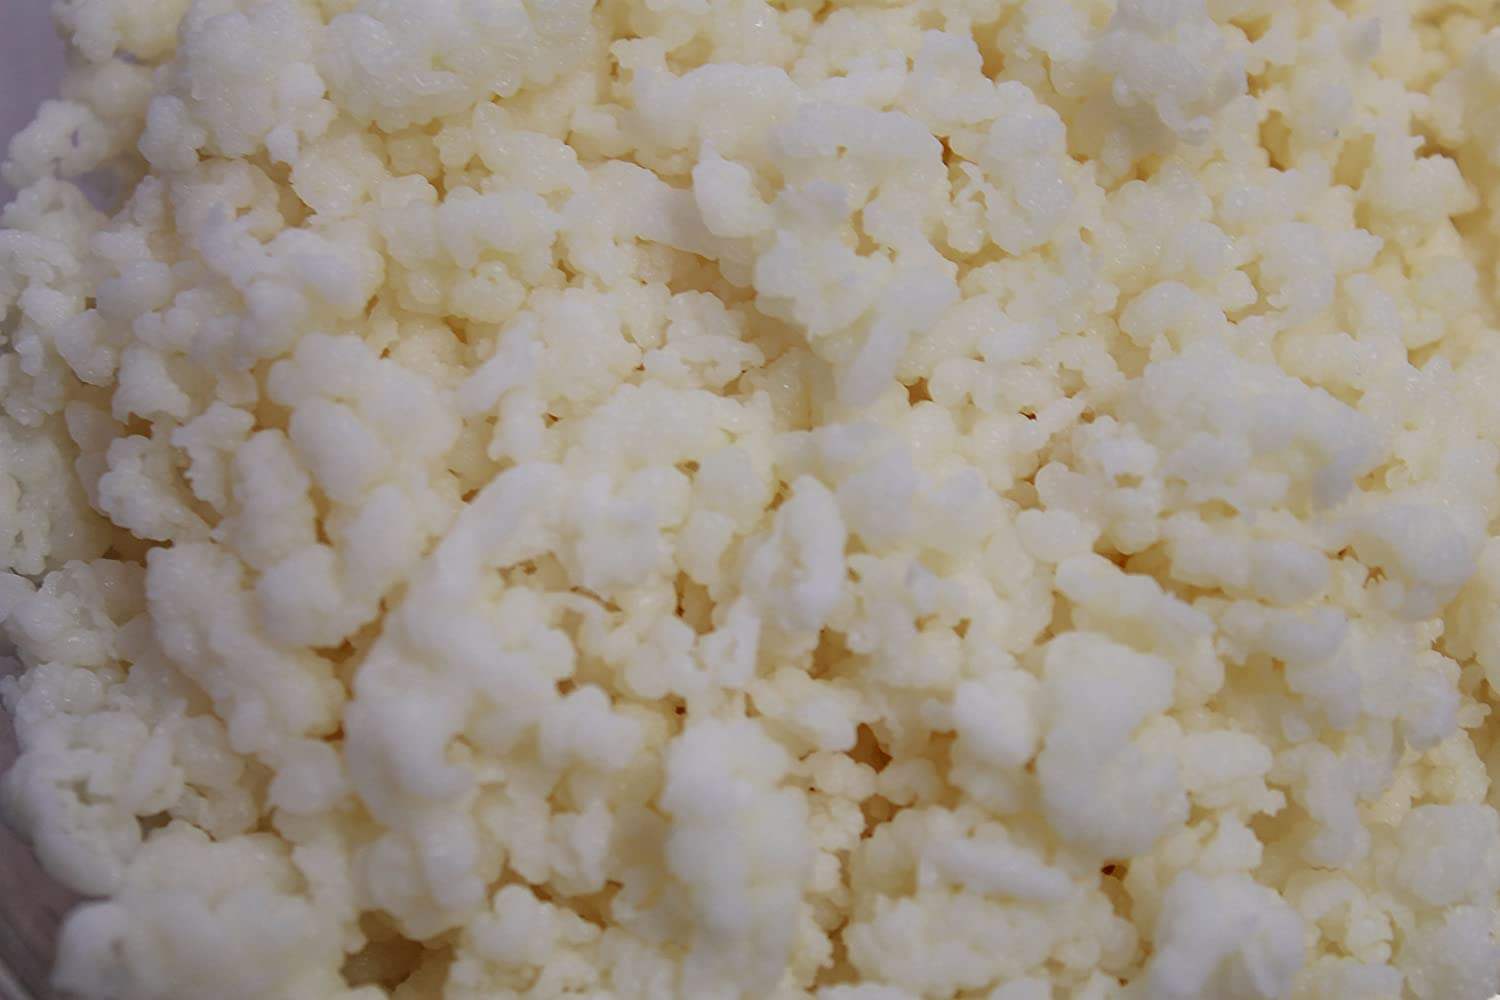 kefir grains. kefir grains